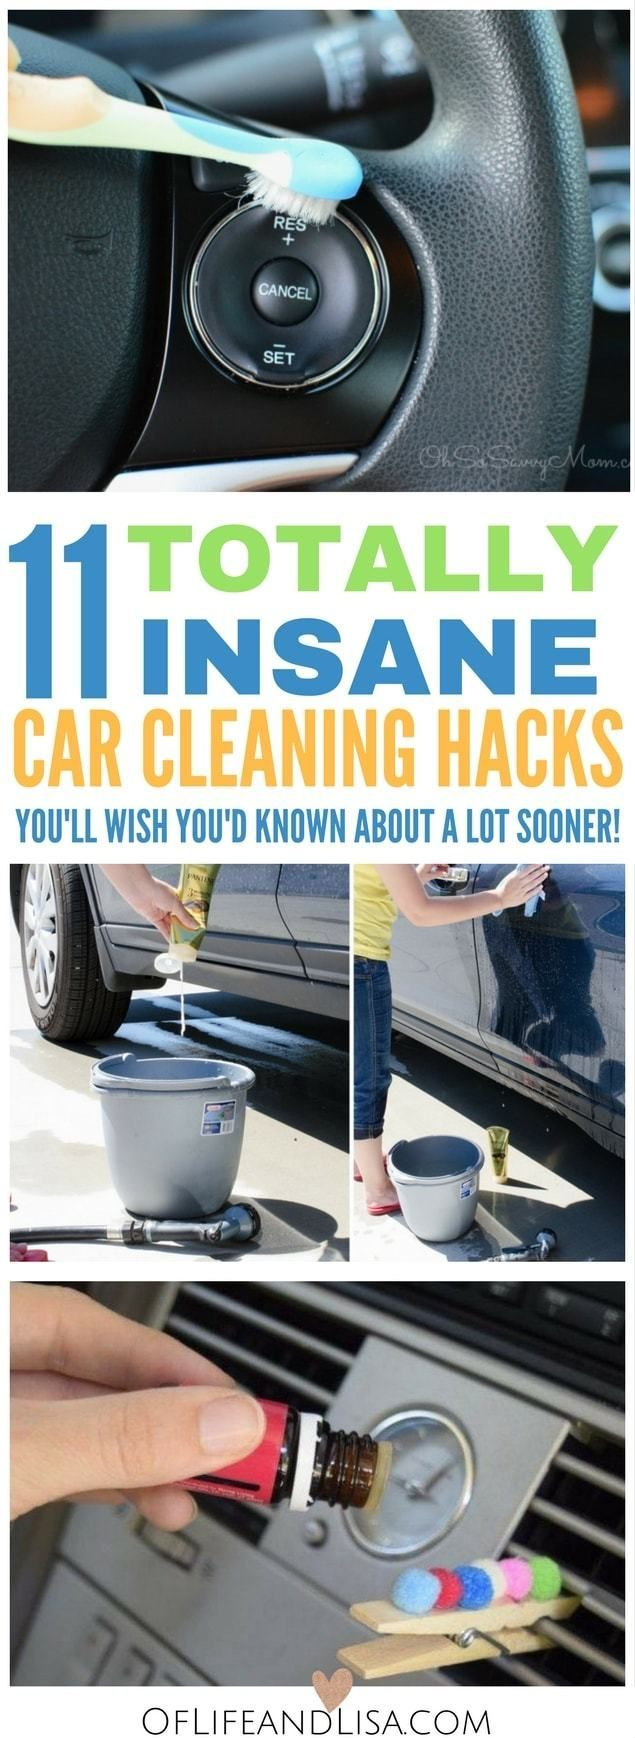 11 Car Cleaning And Detailing Hacks To Try At Home Clean My Car Pinterest Car Cleaning